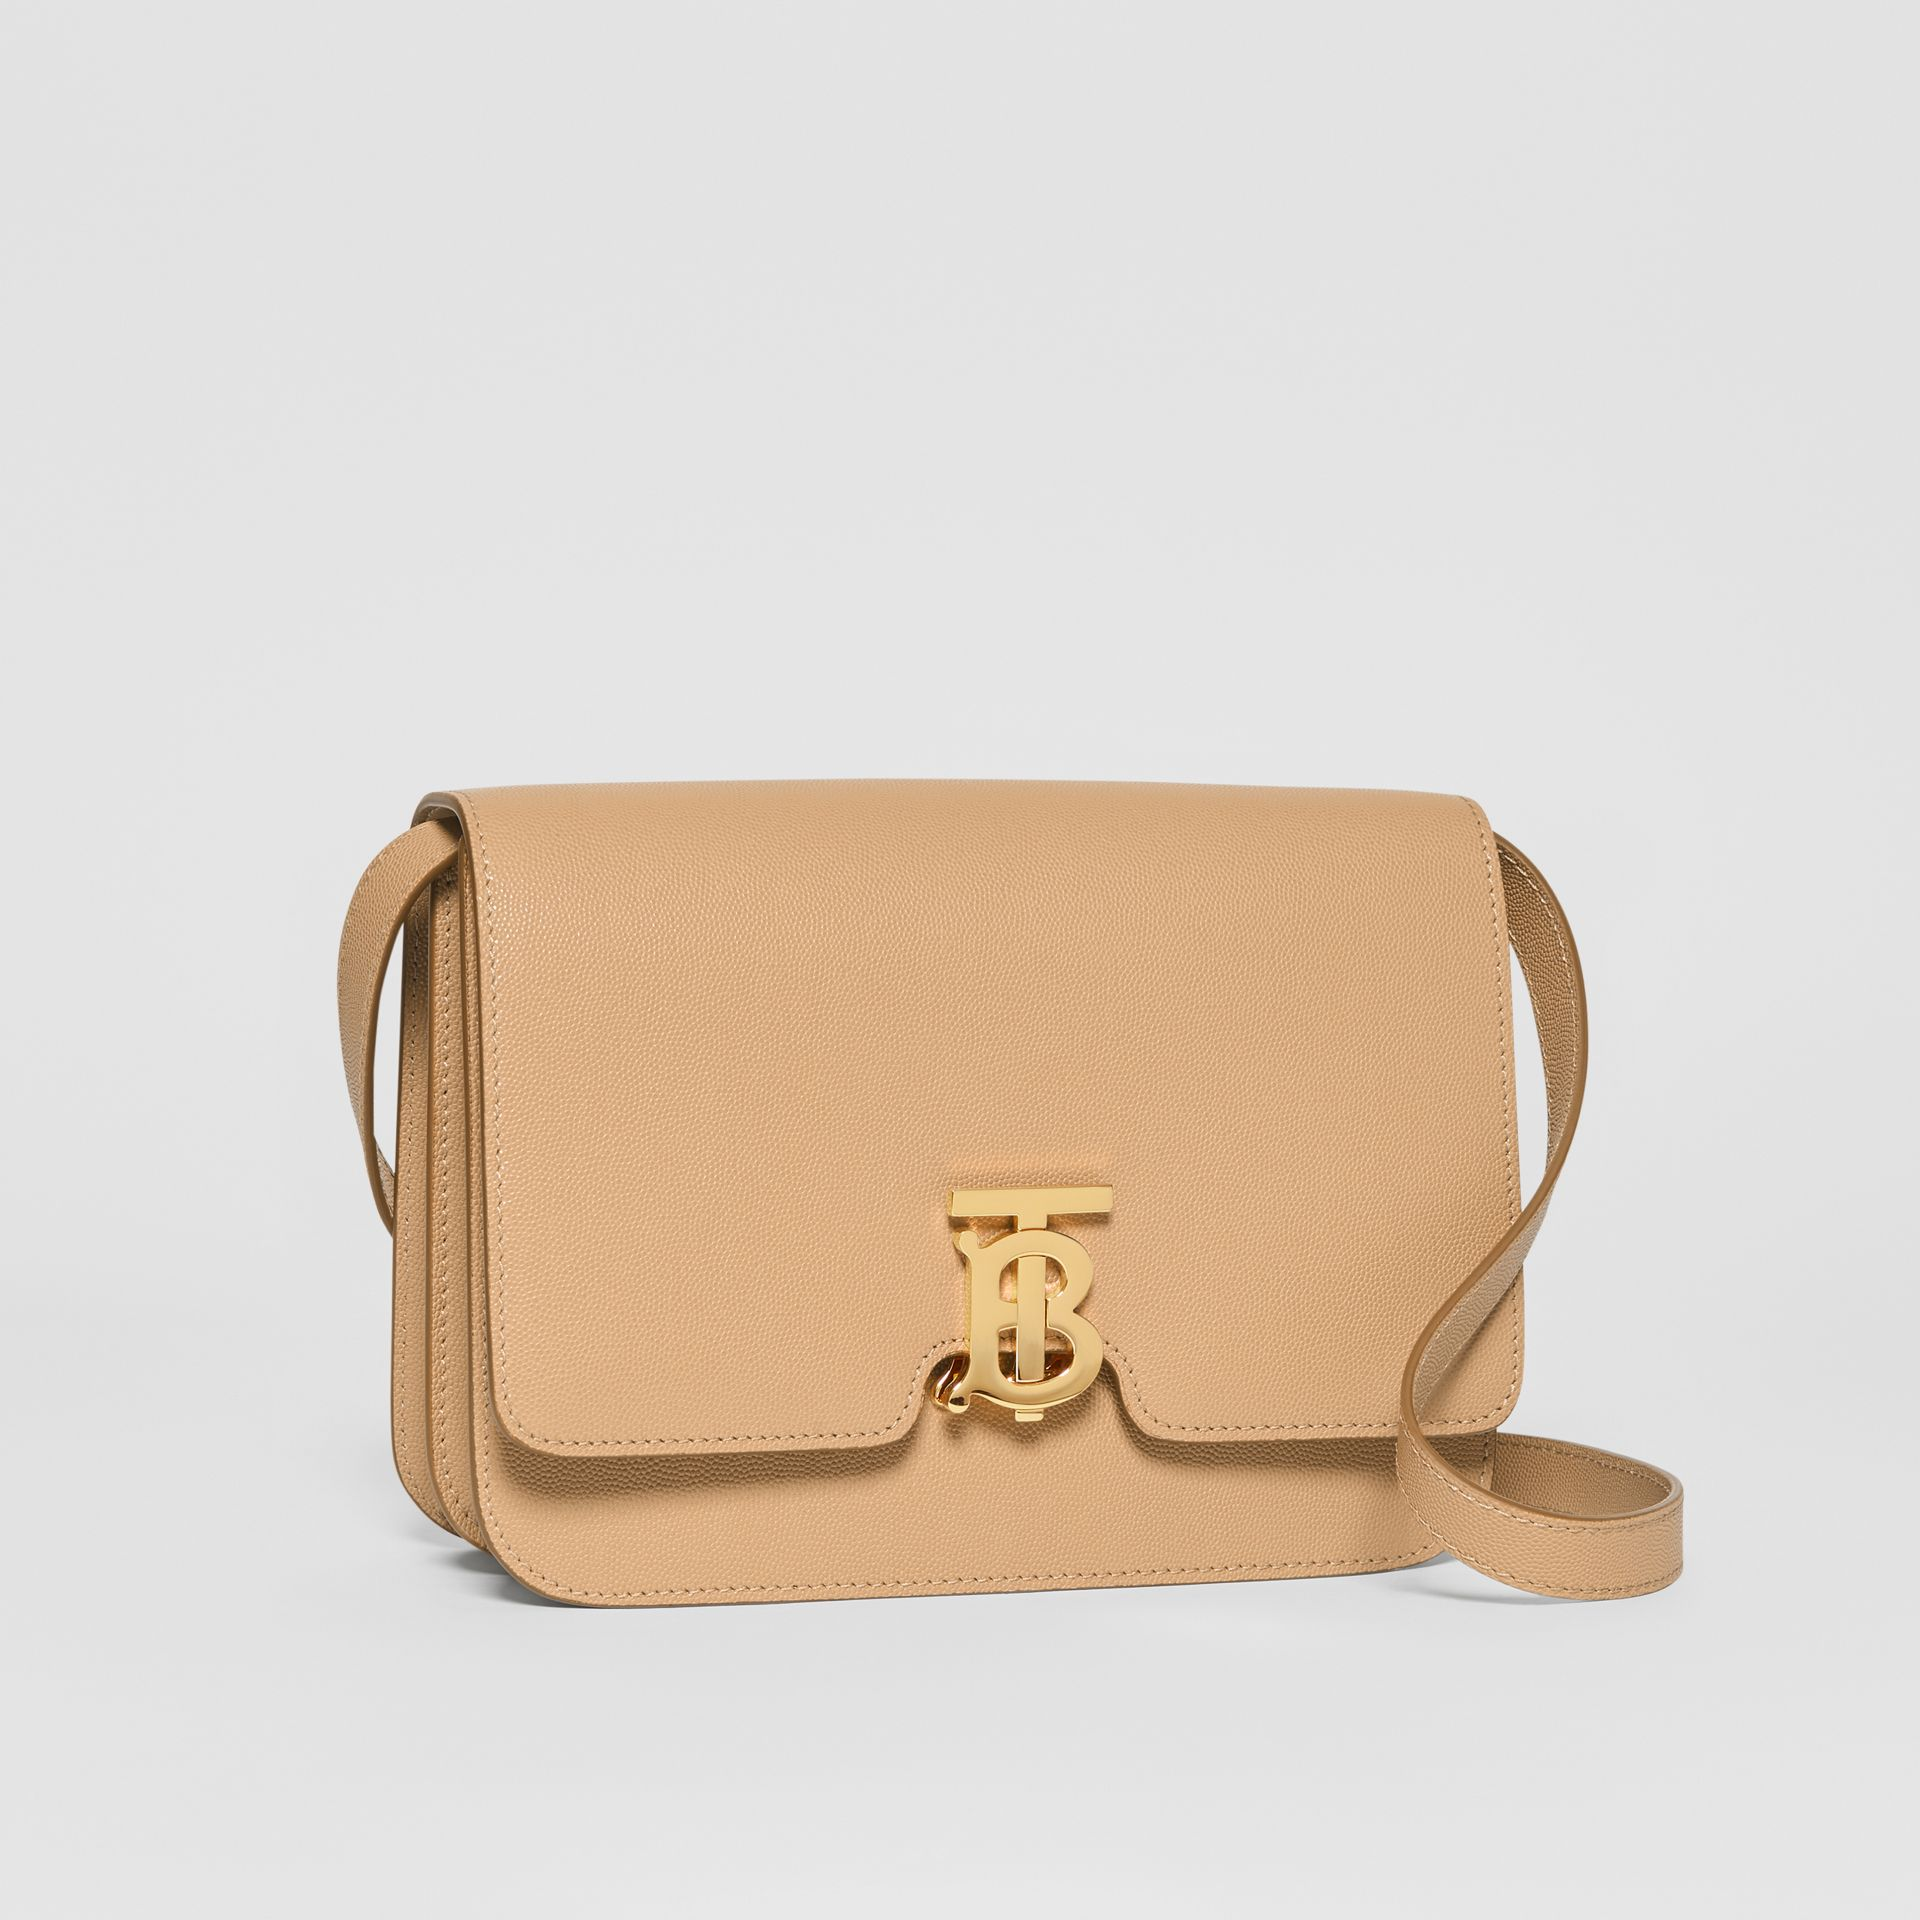 Medium Grainy Leather TB Bag in Archive Beige - Women | Burberry - gallery image 6